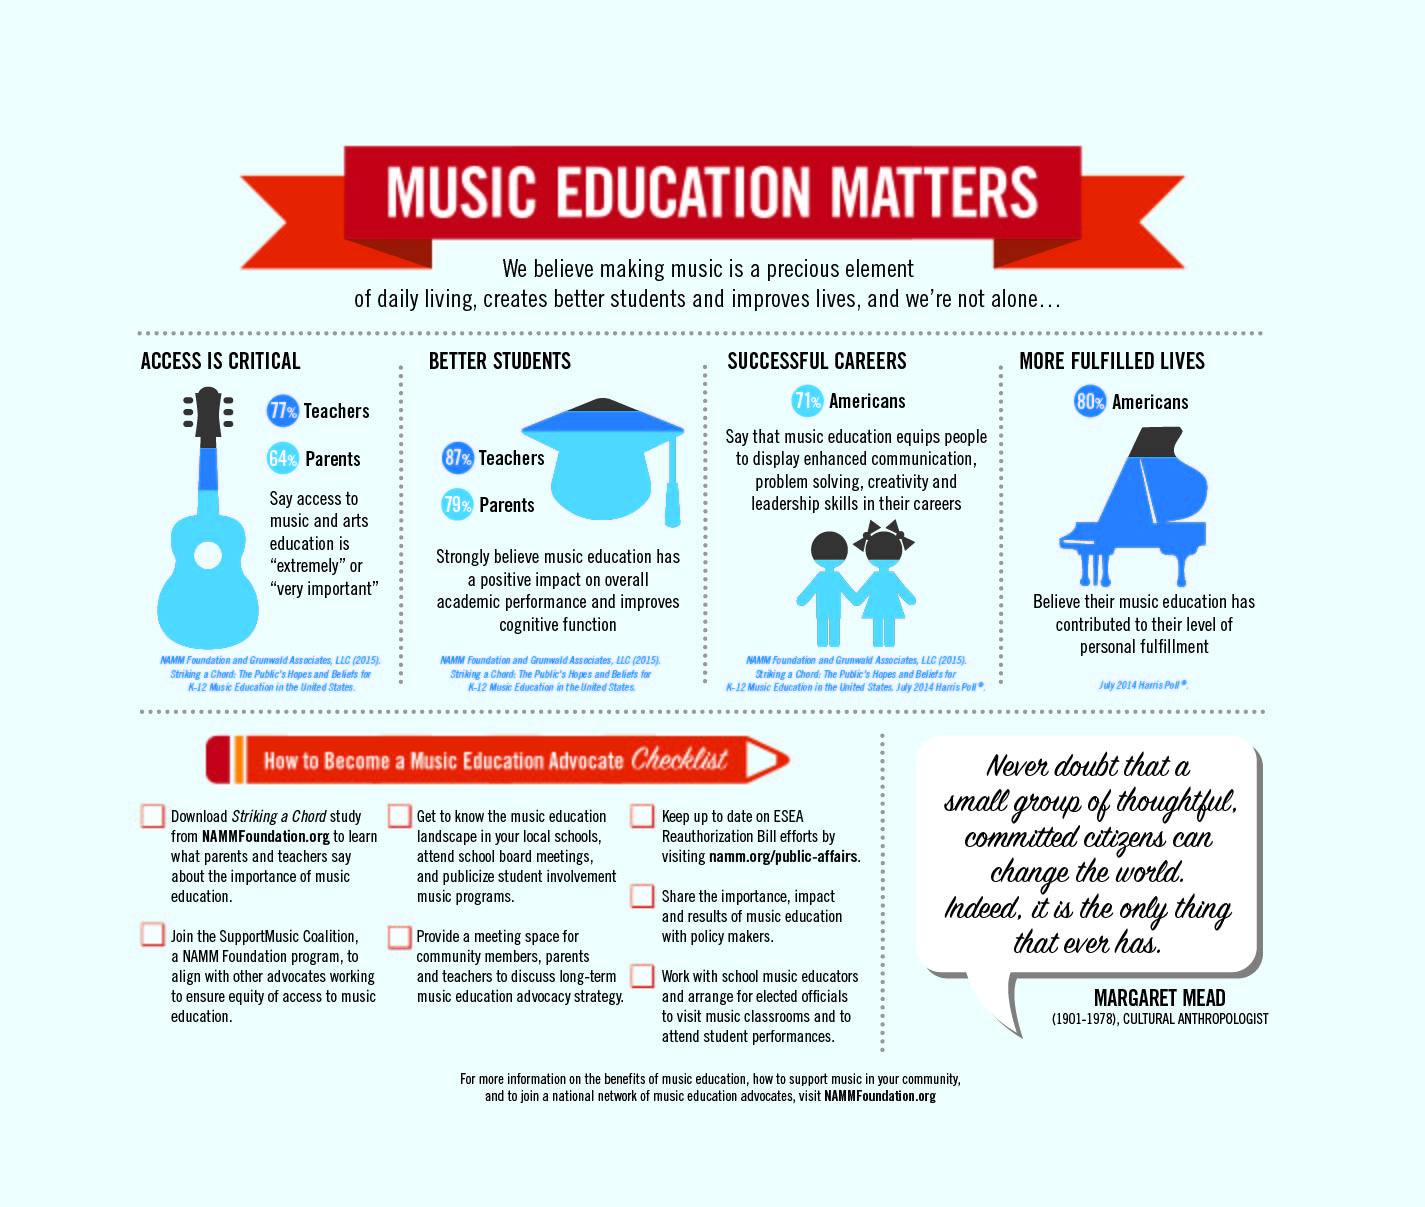 Music Education Matters - An Infographic | West Music